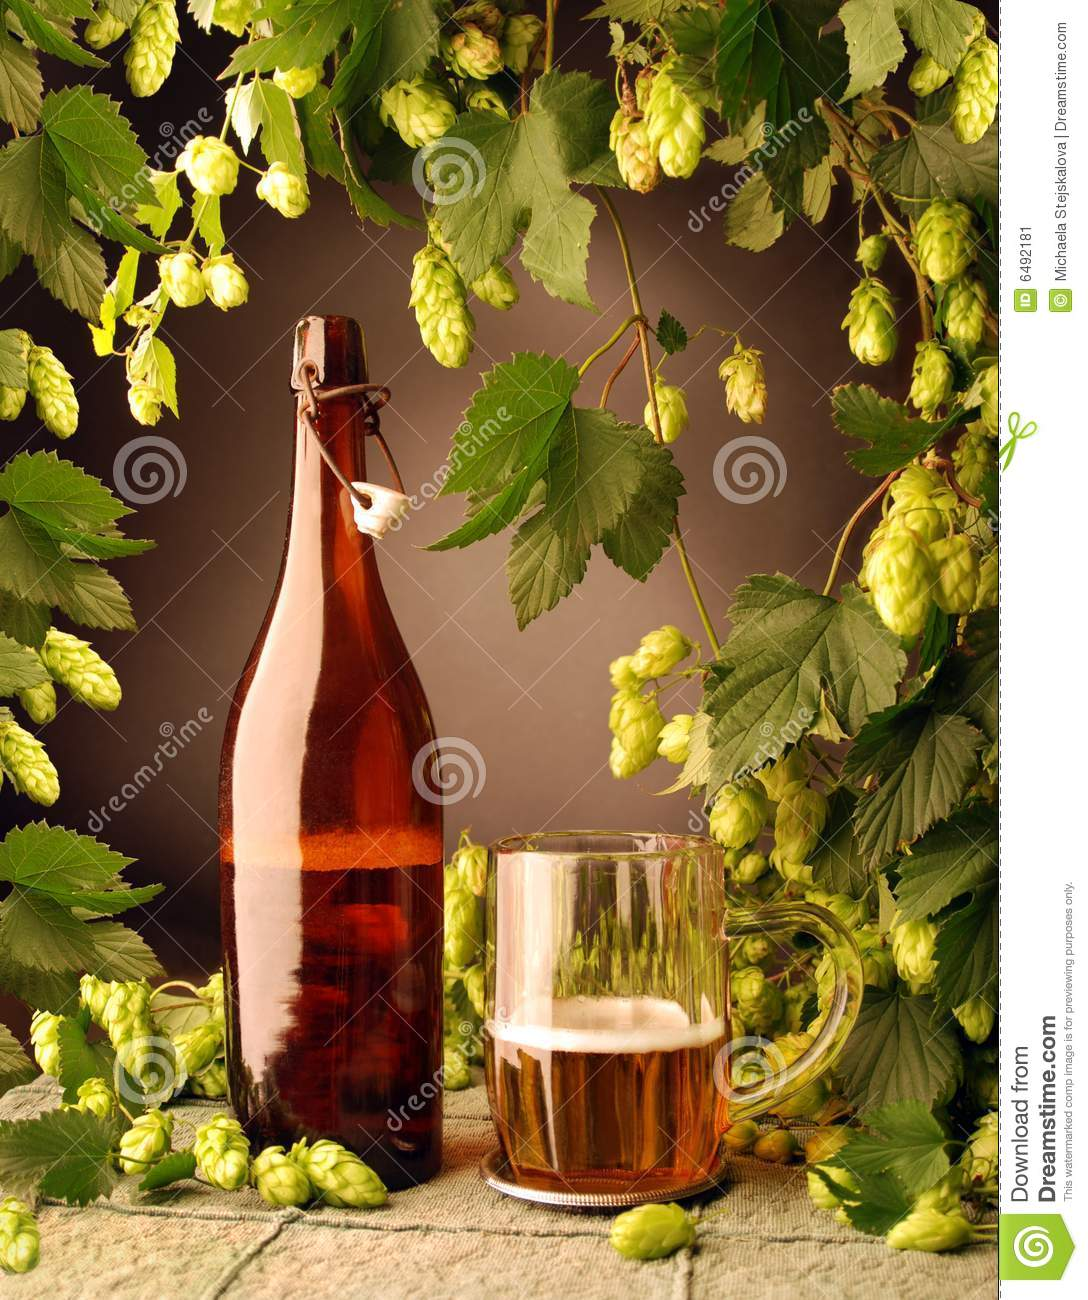 Hops For Decoration Beer Bottle And With Hops Stock Image Image 6492181